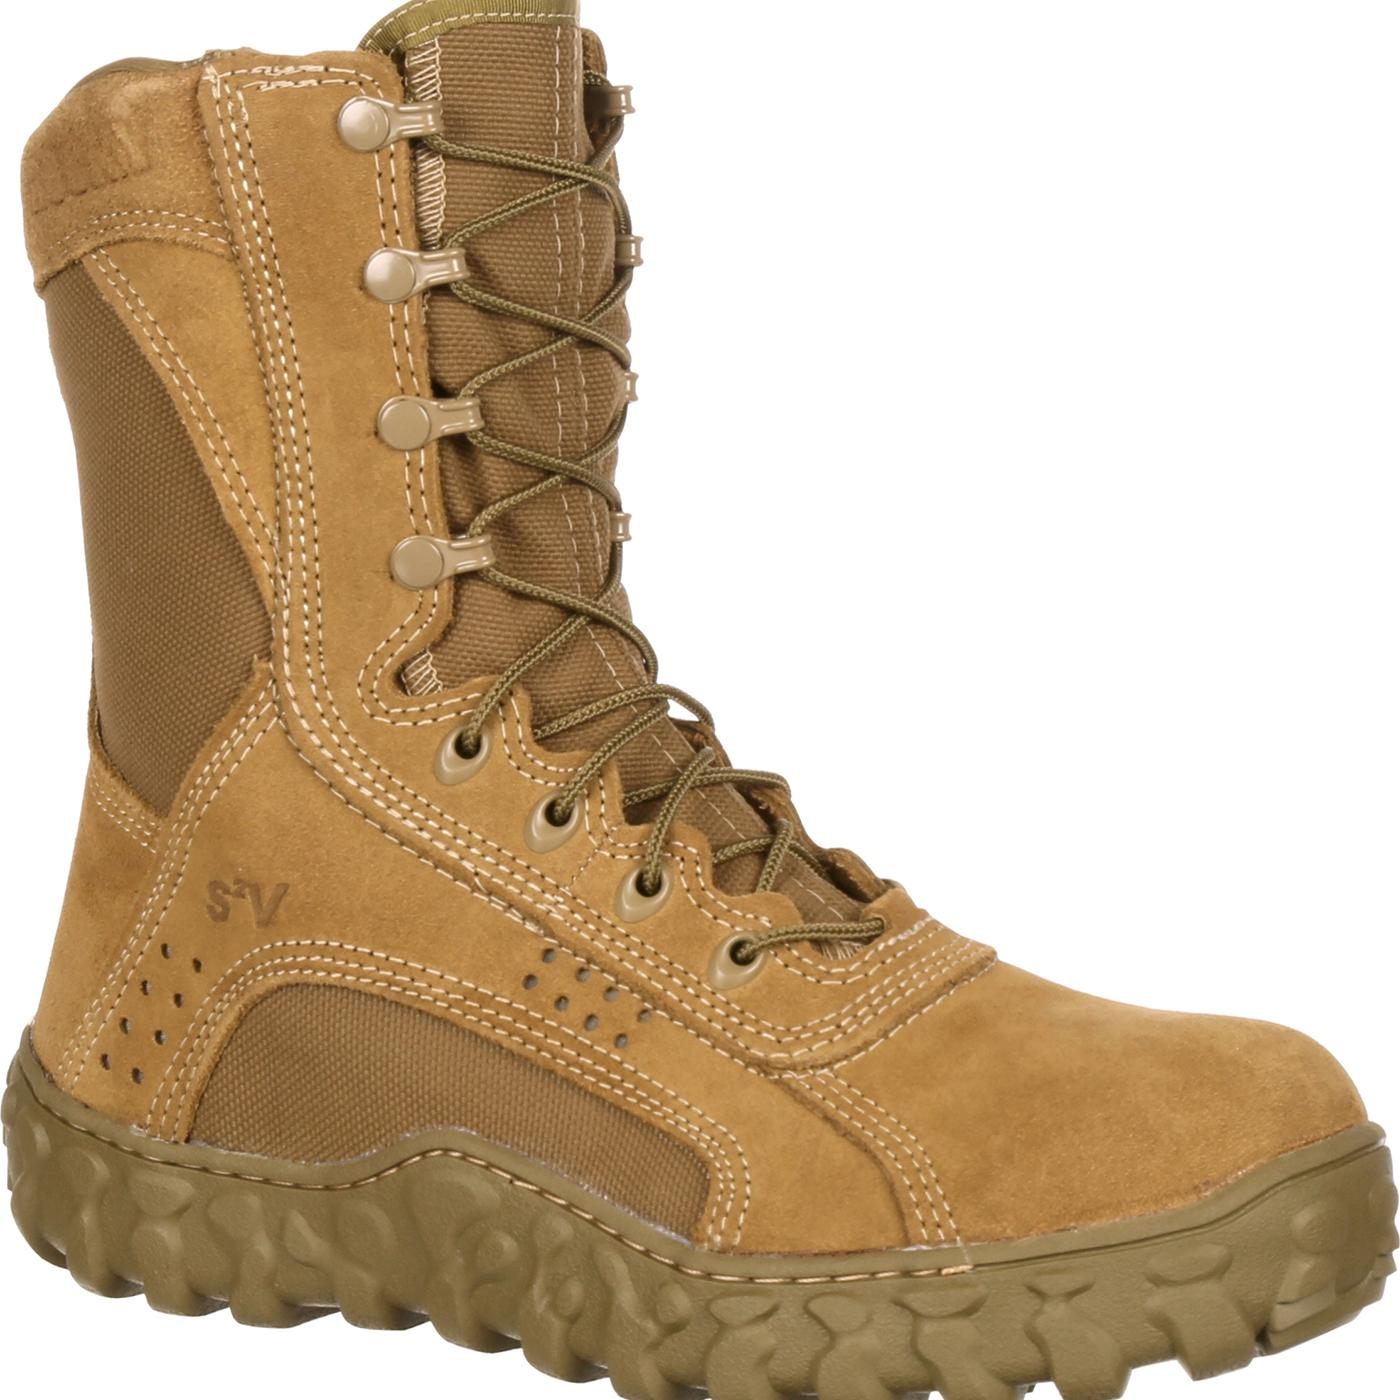 Rocky S2v Steel Toe Military Boot Work Boot